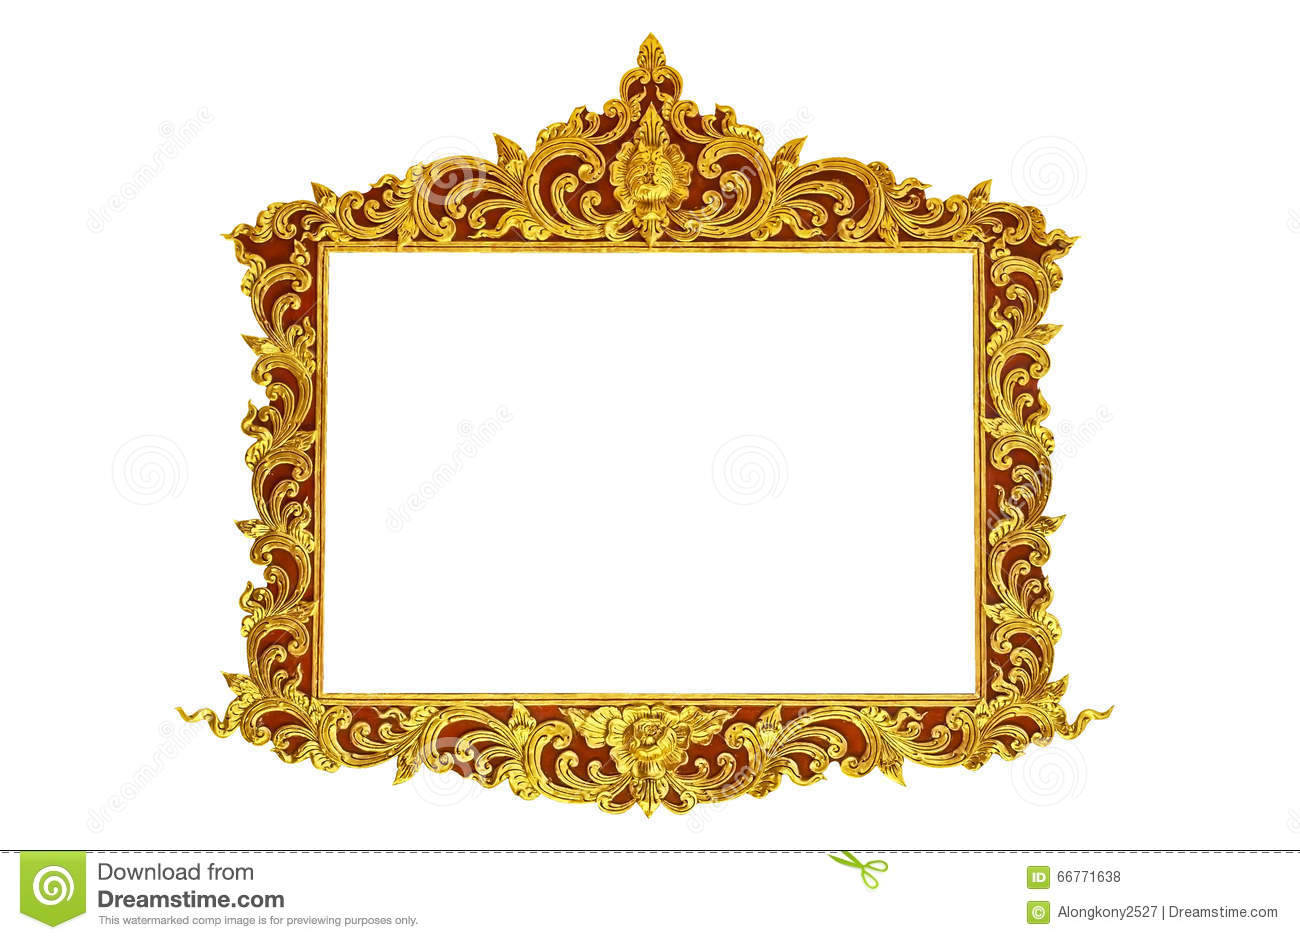 Old Antique Gold Frame Stucco Walls Greek Culture Roman Vintage Style Pattern Line Design For Border Isolated On White Background Stock Photo